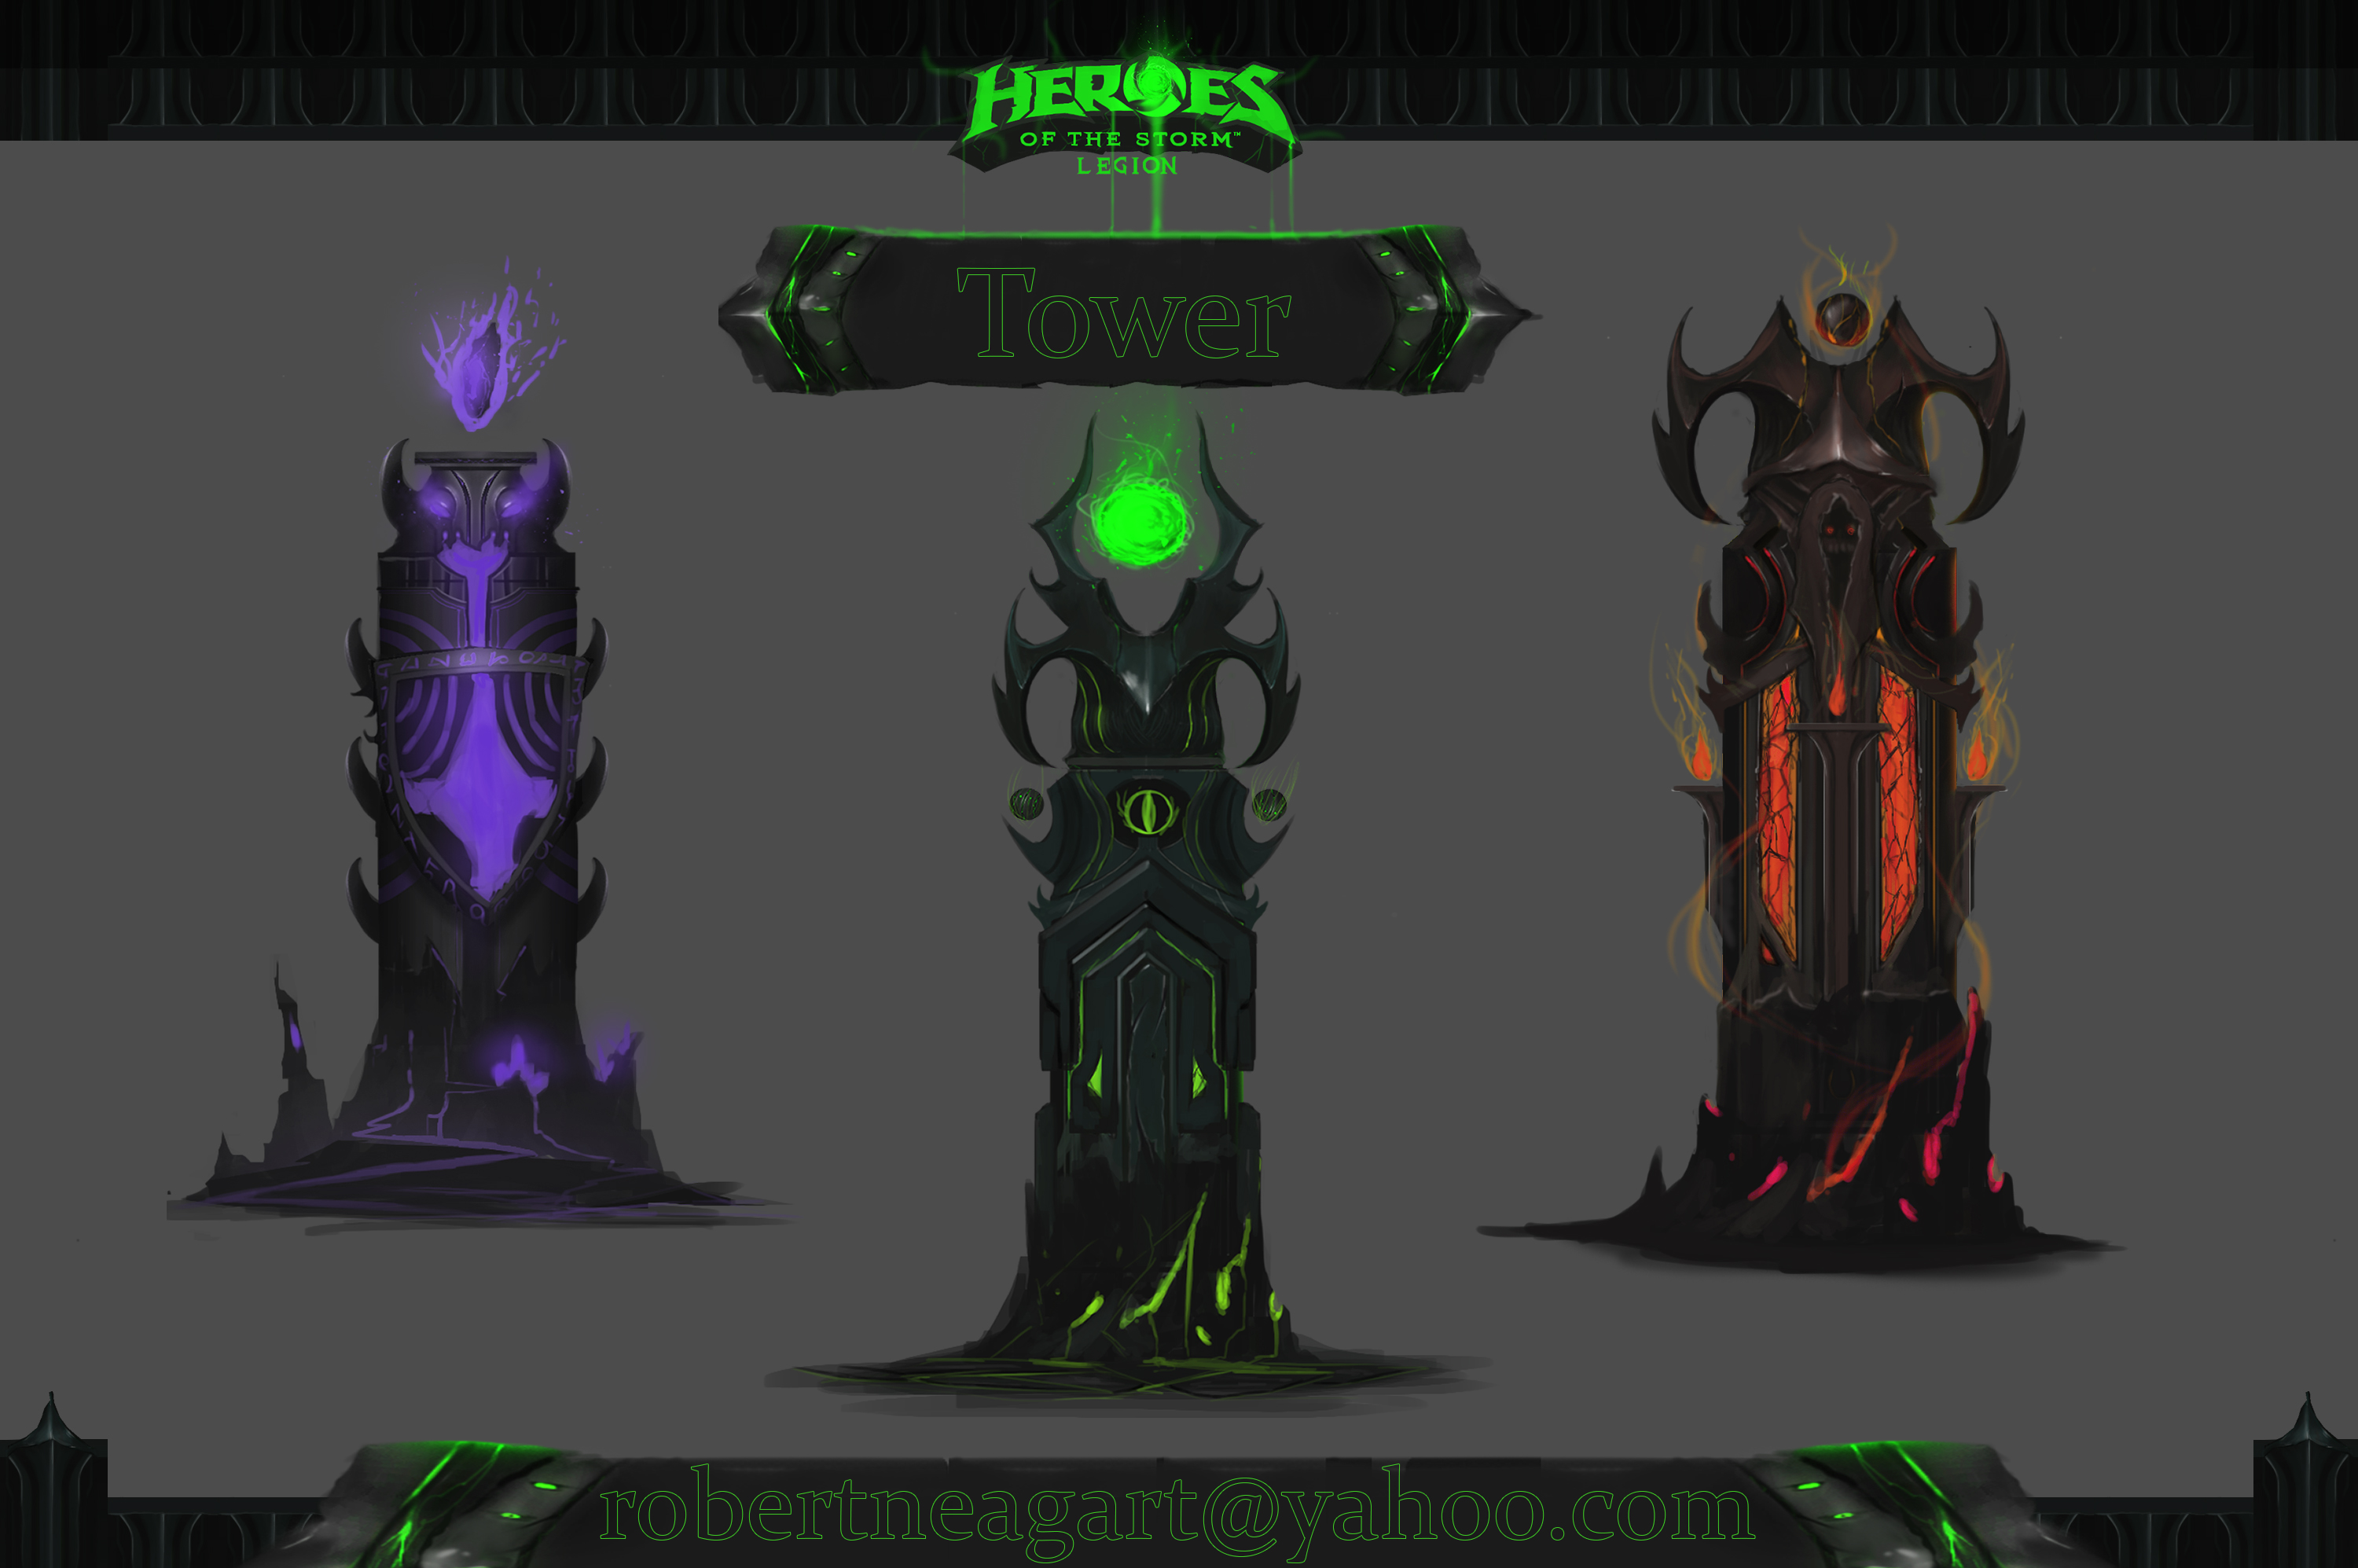 Heores of the storm tower [concept art]